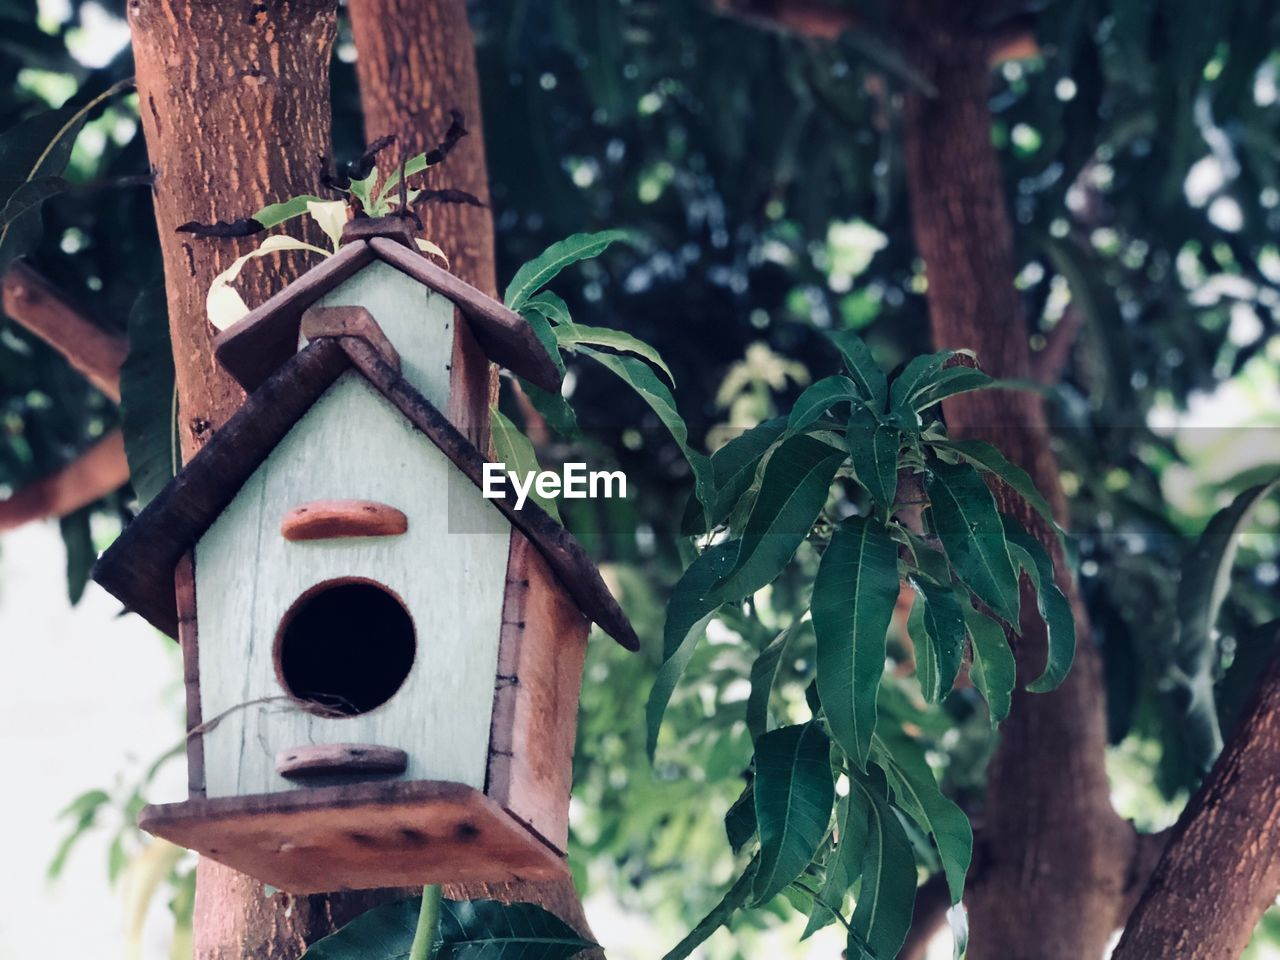 plant, birdhouse, focus on foreground, tree, nature, day, no people, growth, plant part, leaf, close-up, green color, tree trunk, outdoors, trunk, wood - material, low angle view, beauty in nature, tranquility, hole